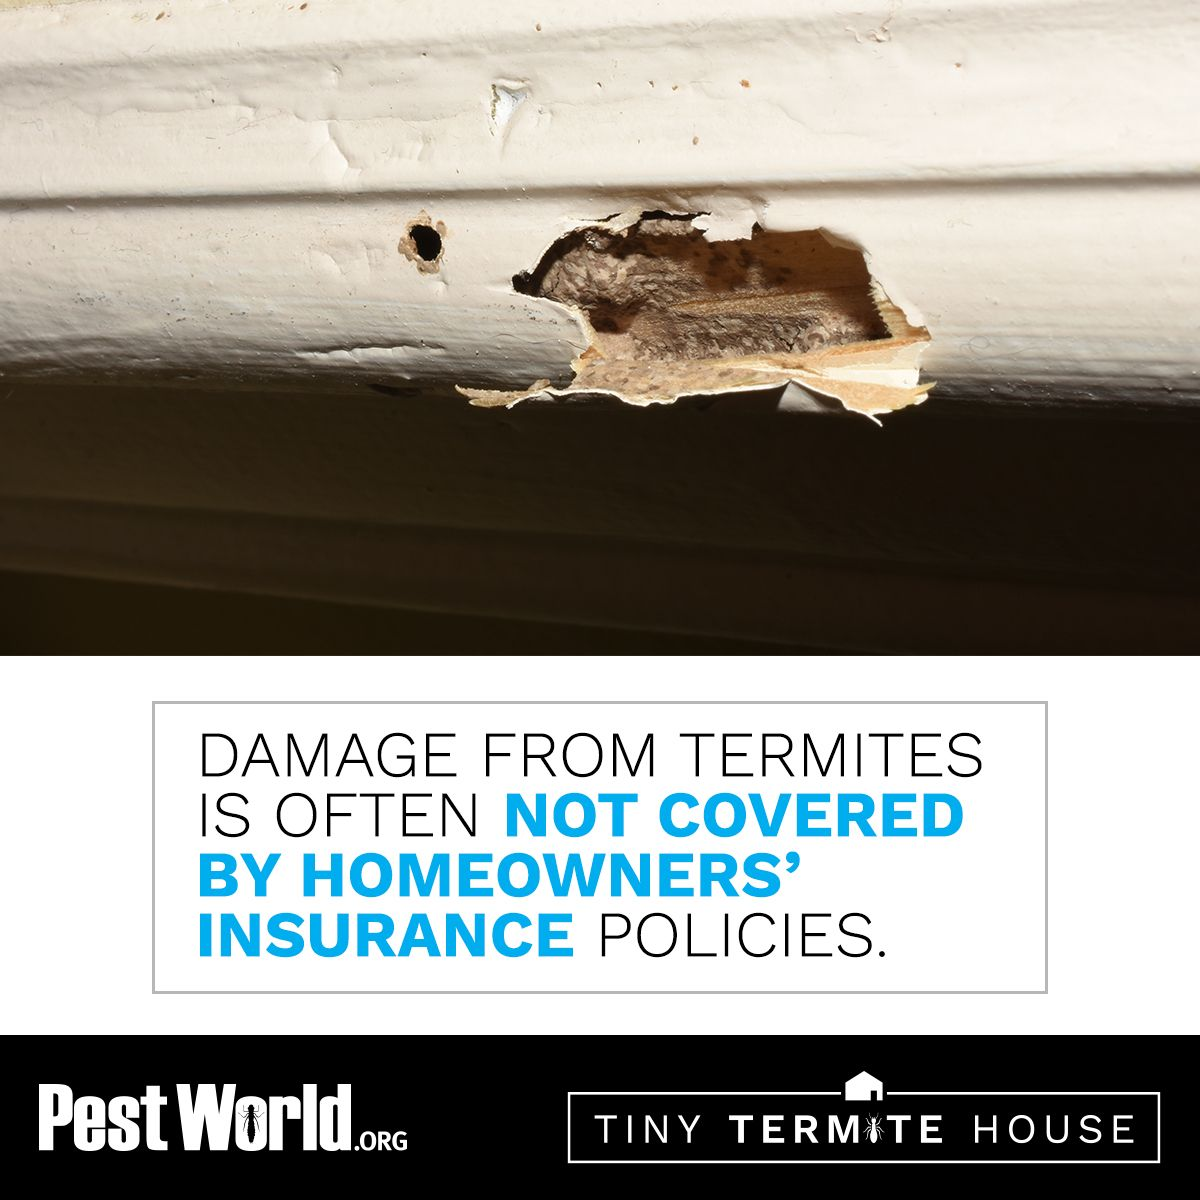 Did you know that damage from termites is often not